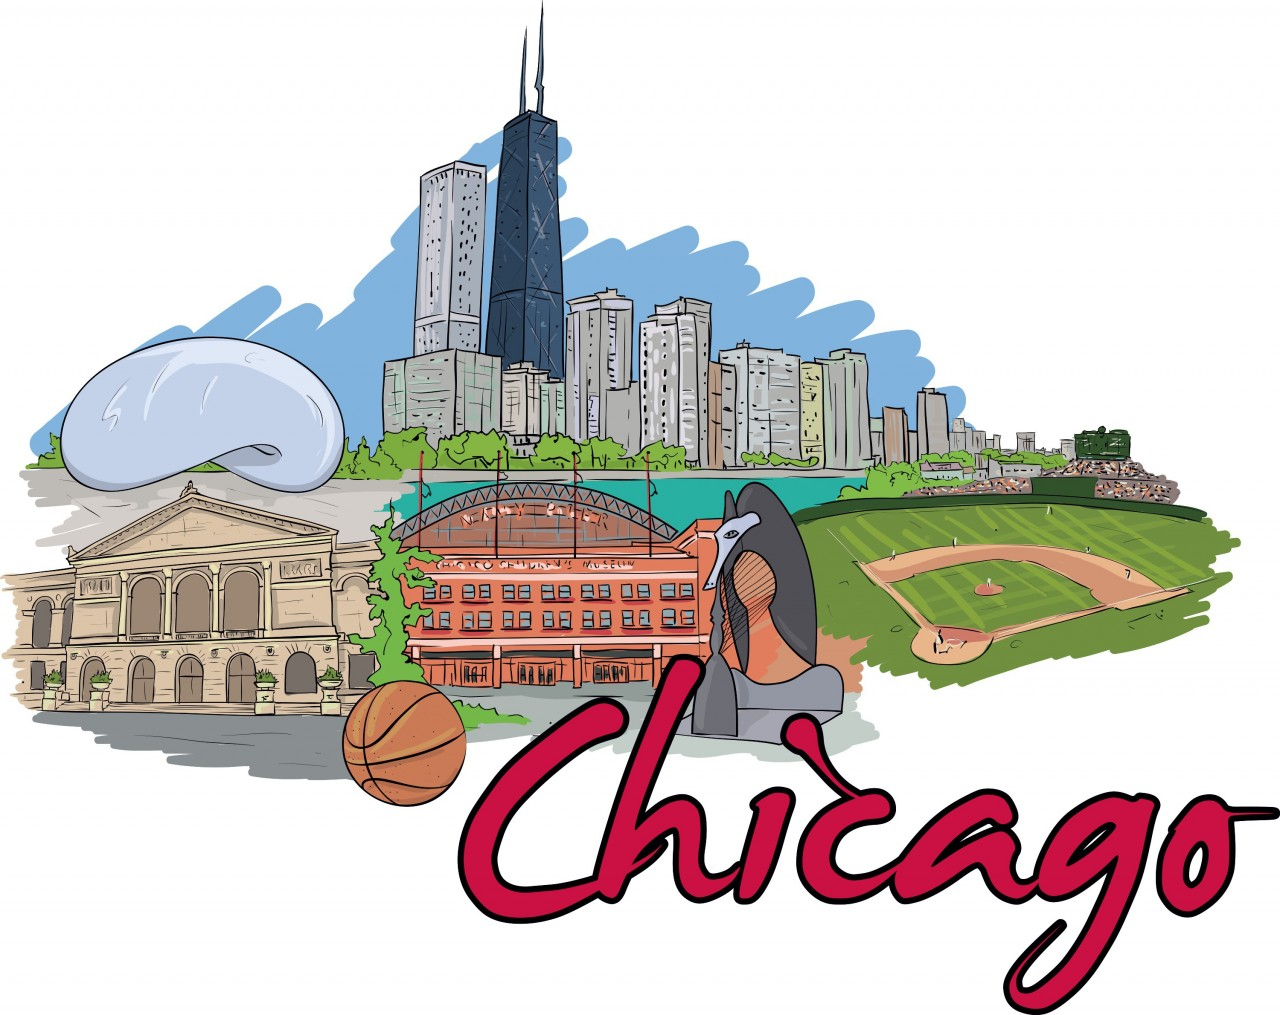 Retirement: Why to STAY in Chicagoland